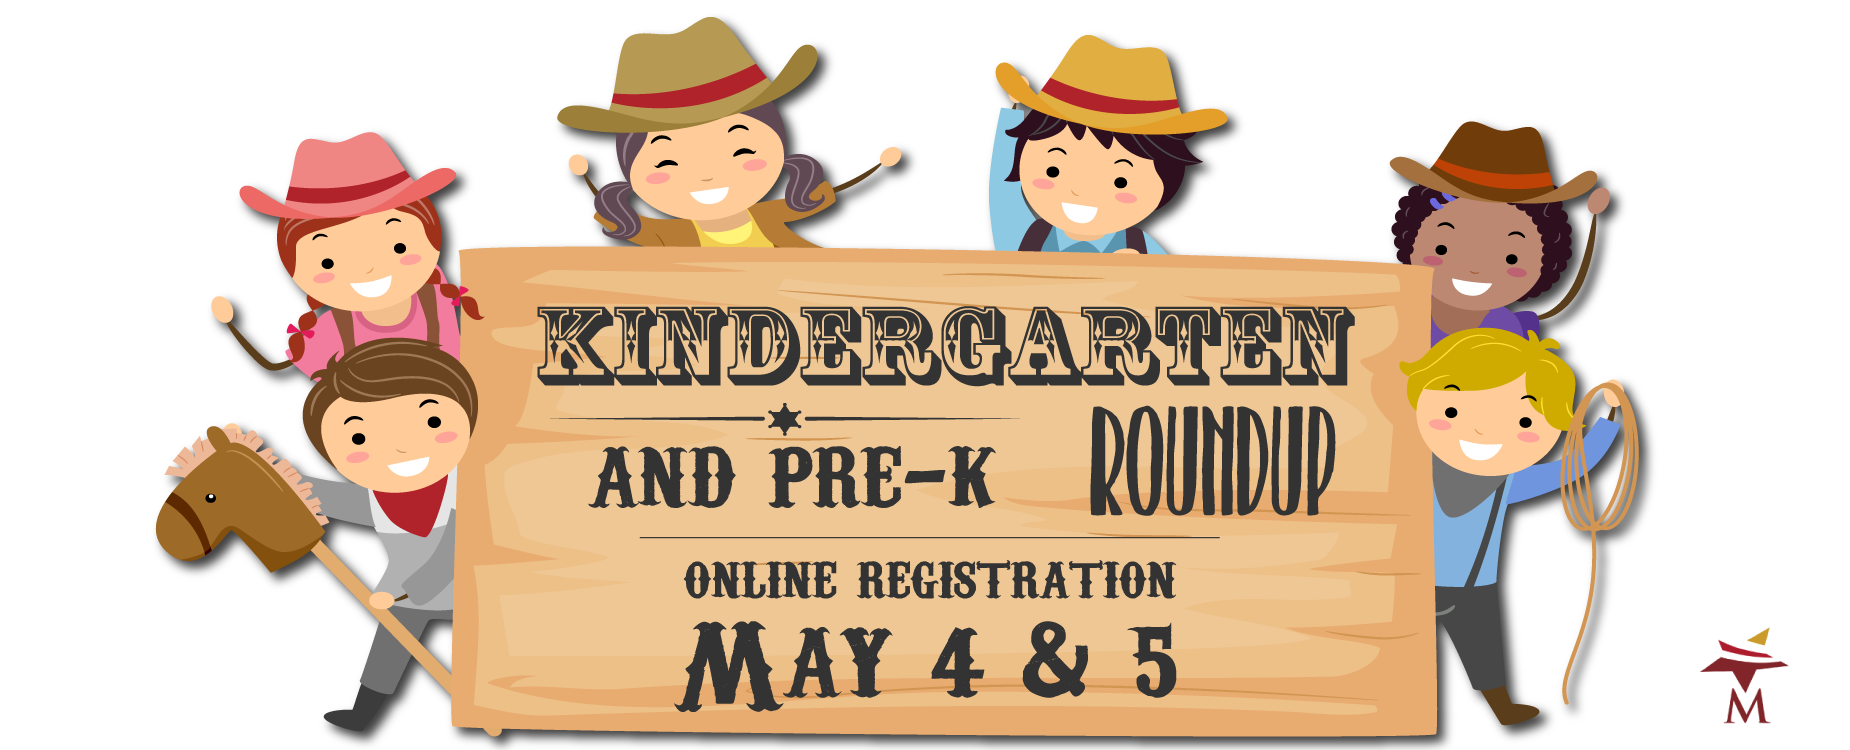 Kindergarten Round-Up May 4 & 5